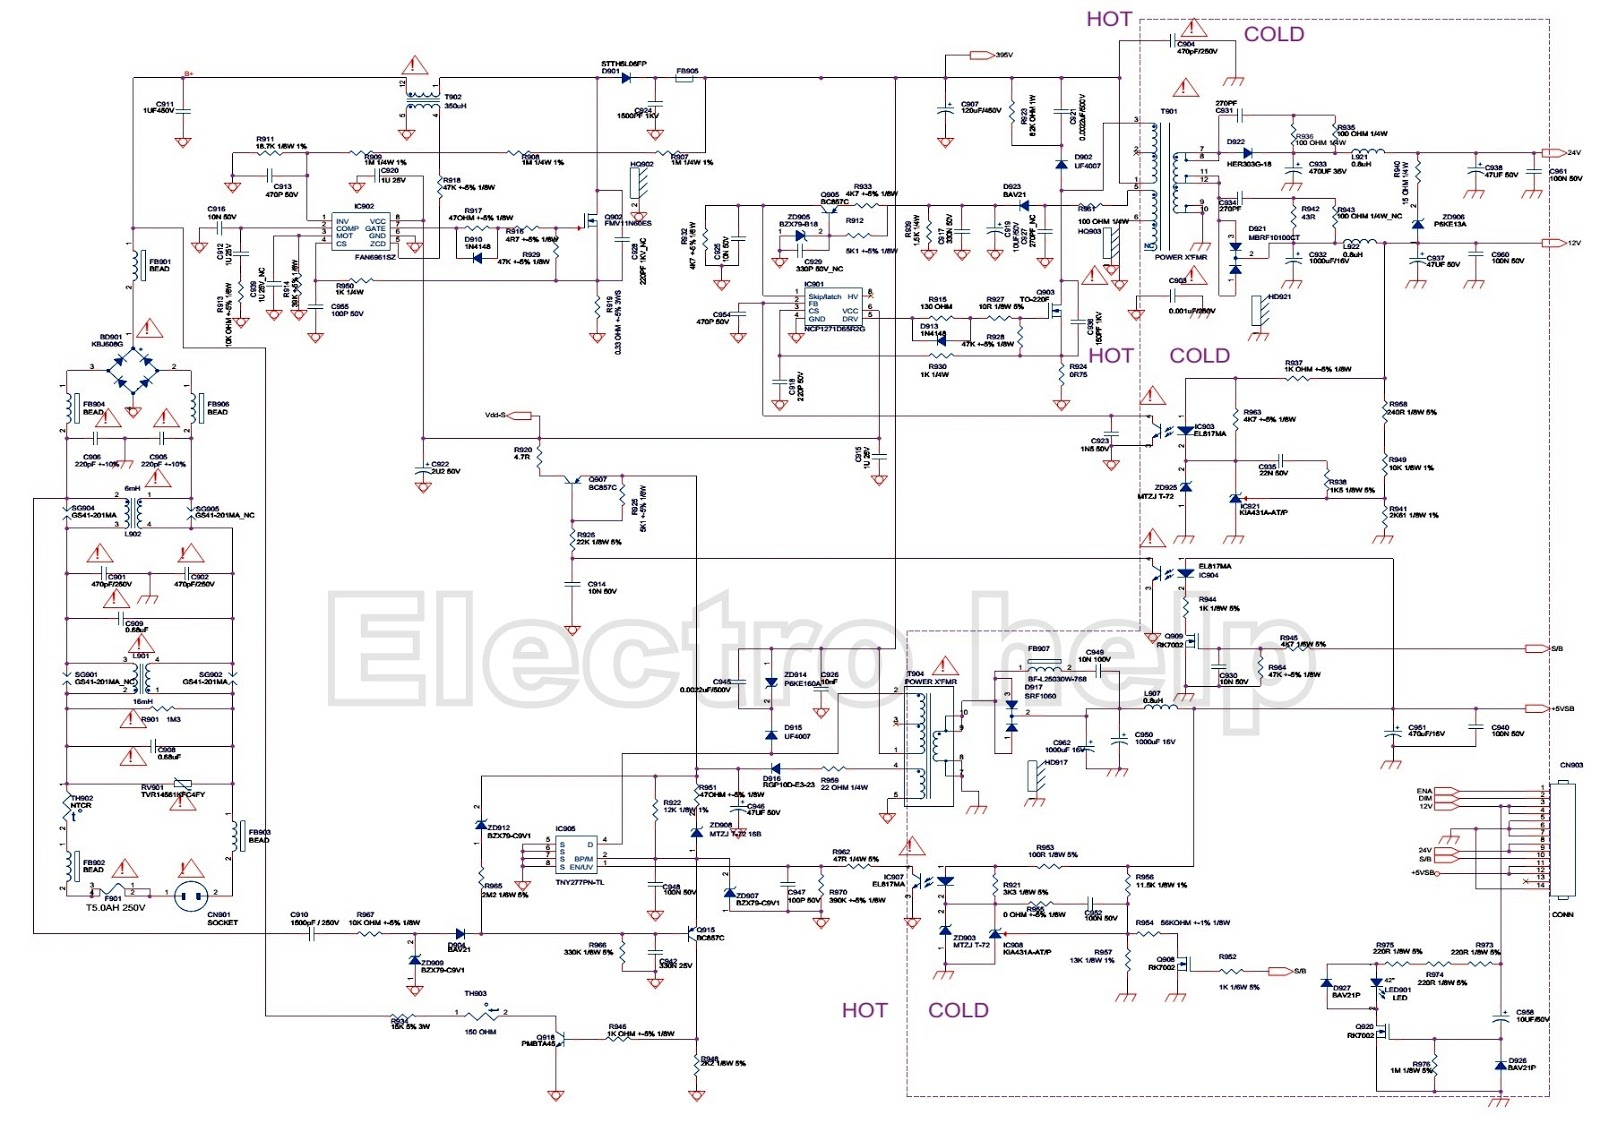 715g4802c china lcd tv power supply smps circuit diagram rh electronicshelponline blogspot com toshiba lcd tv circuit diagram lcd tv power supply circuit diagram